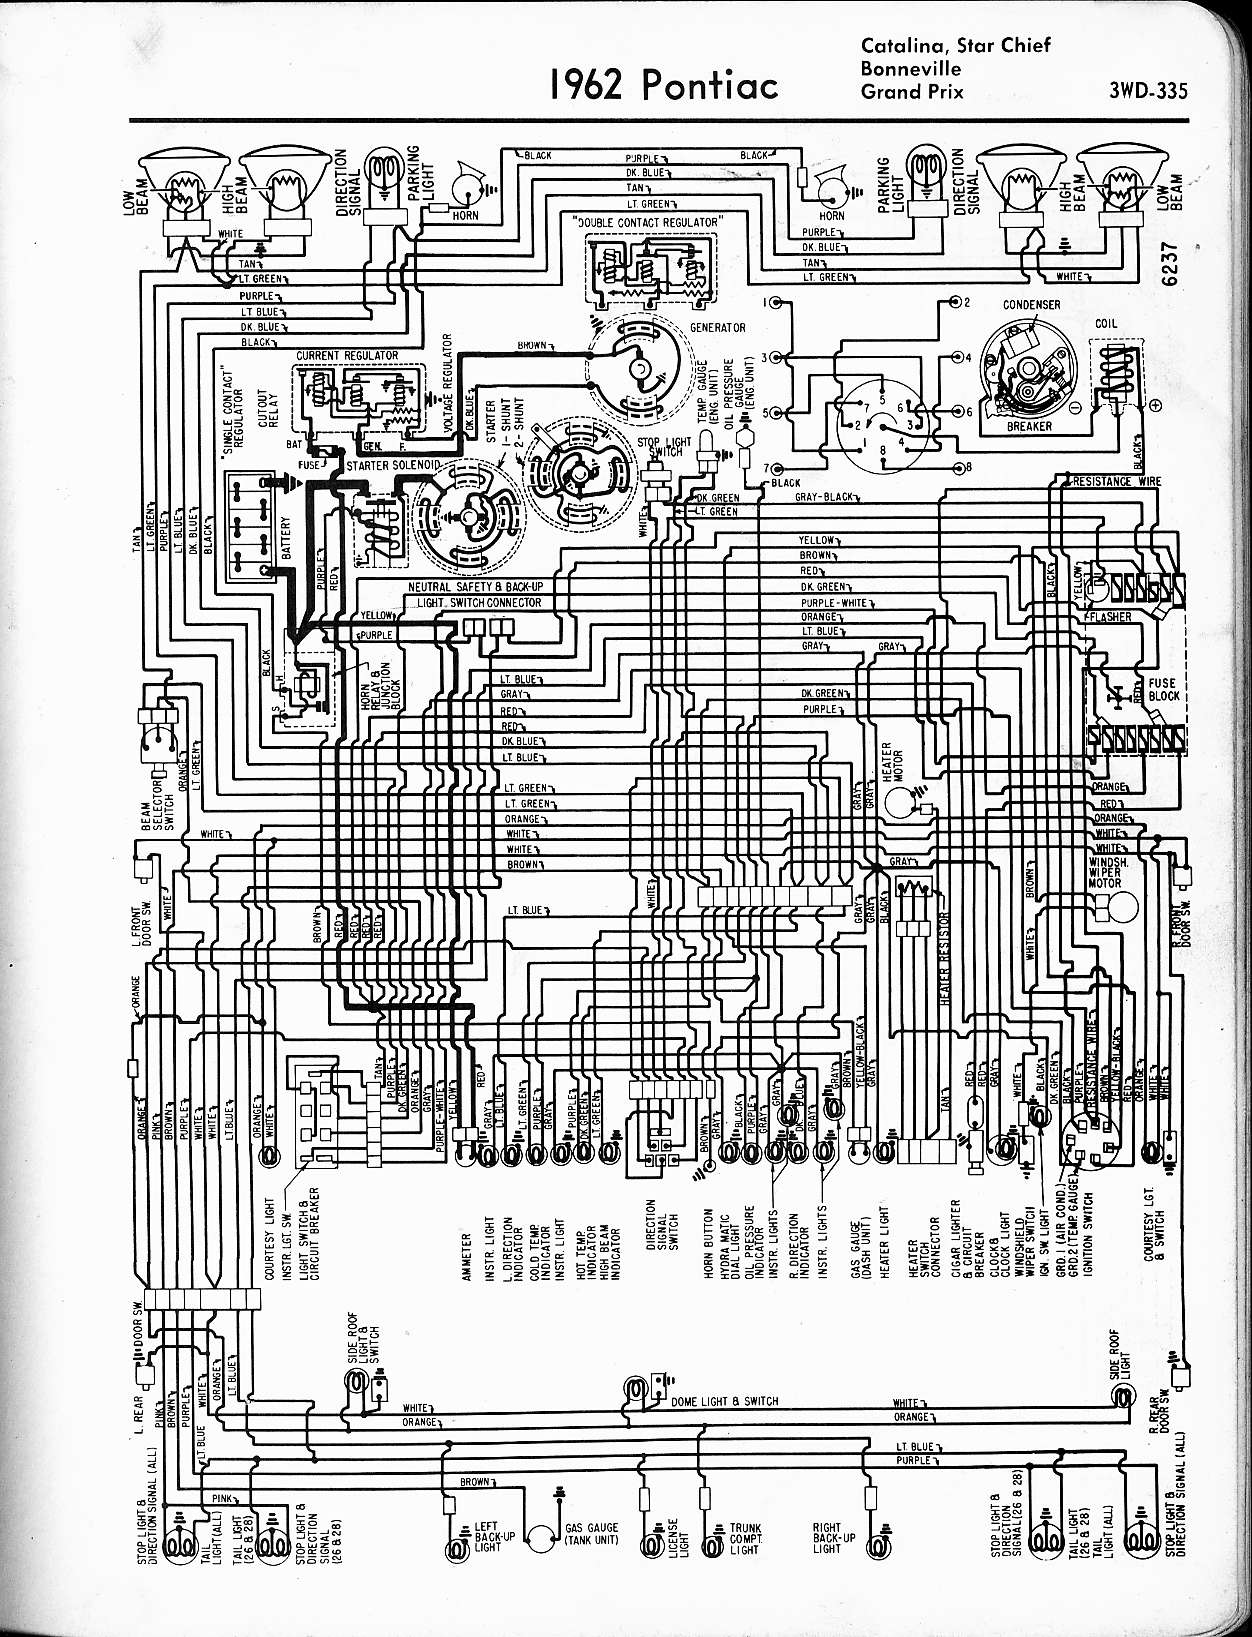 MWire5765 335 wallace racing wiring diagrams 1965 pontiac grand prix wiring diagram at crackthecode.co